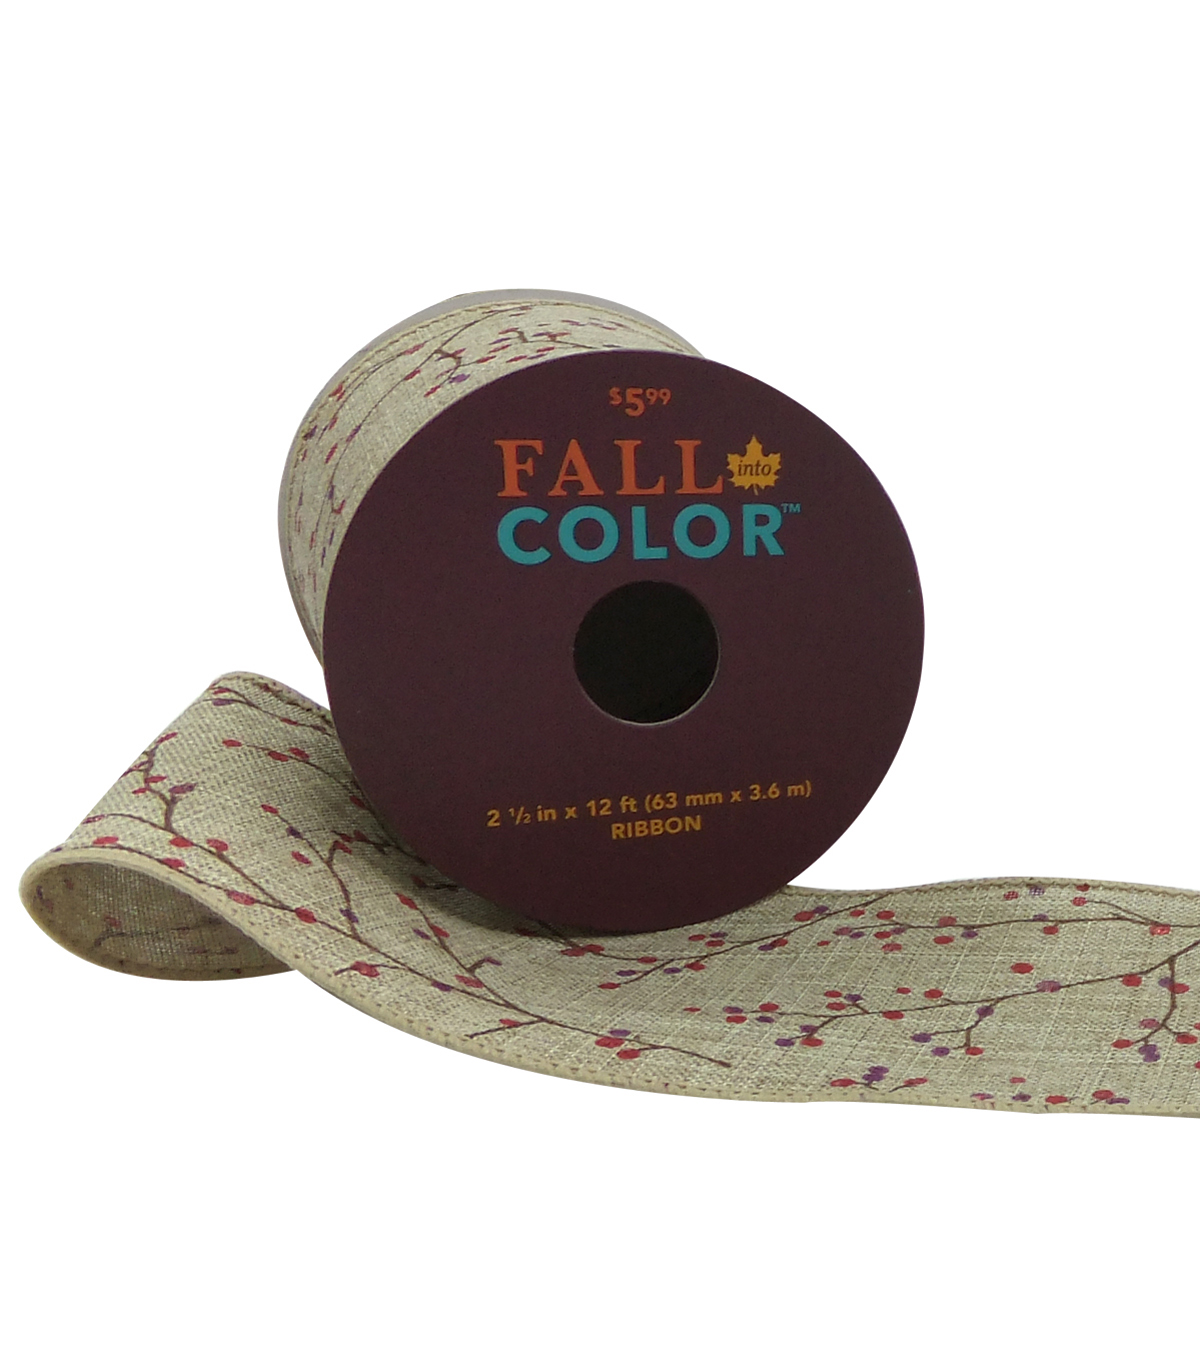 Fall Into Color Ribbon 2.5''x12'-Berries on Natural